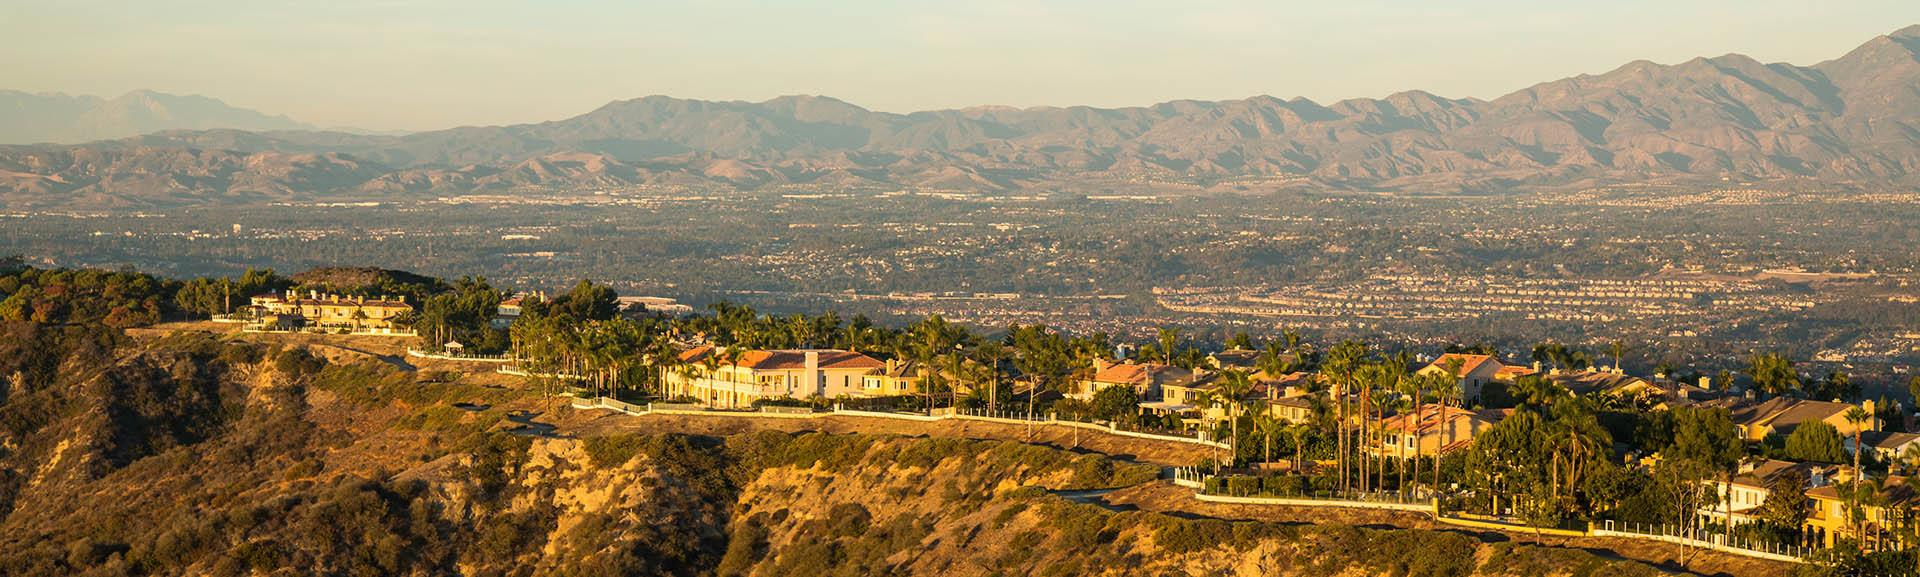 Learn about our neighborhood at Niguel Summit Condominium Rentals in Laguna Niguel, CA on our website